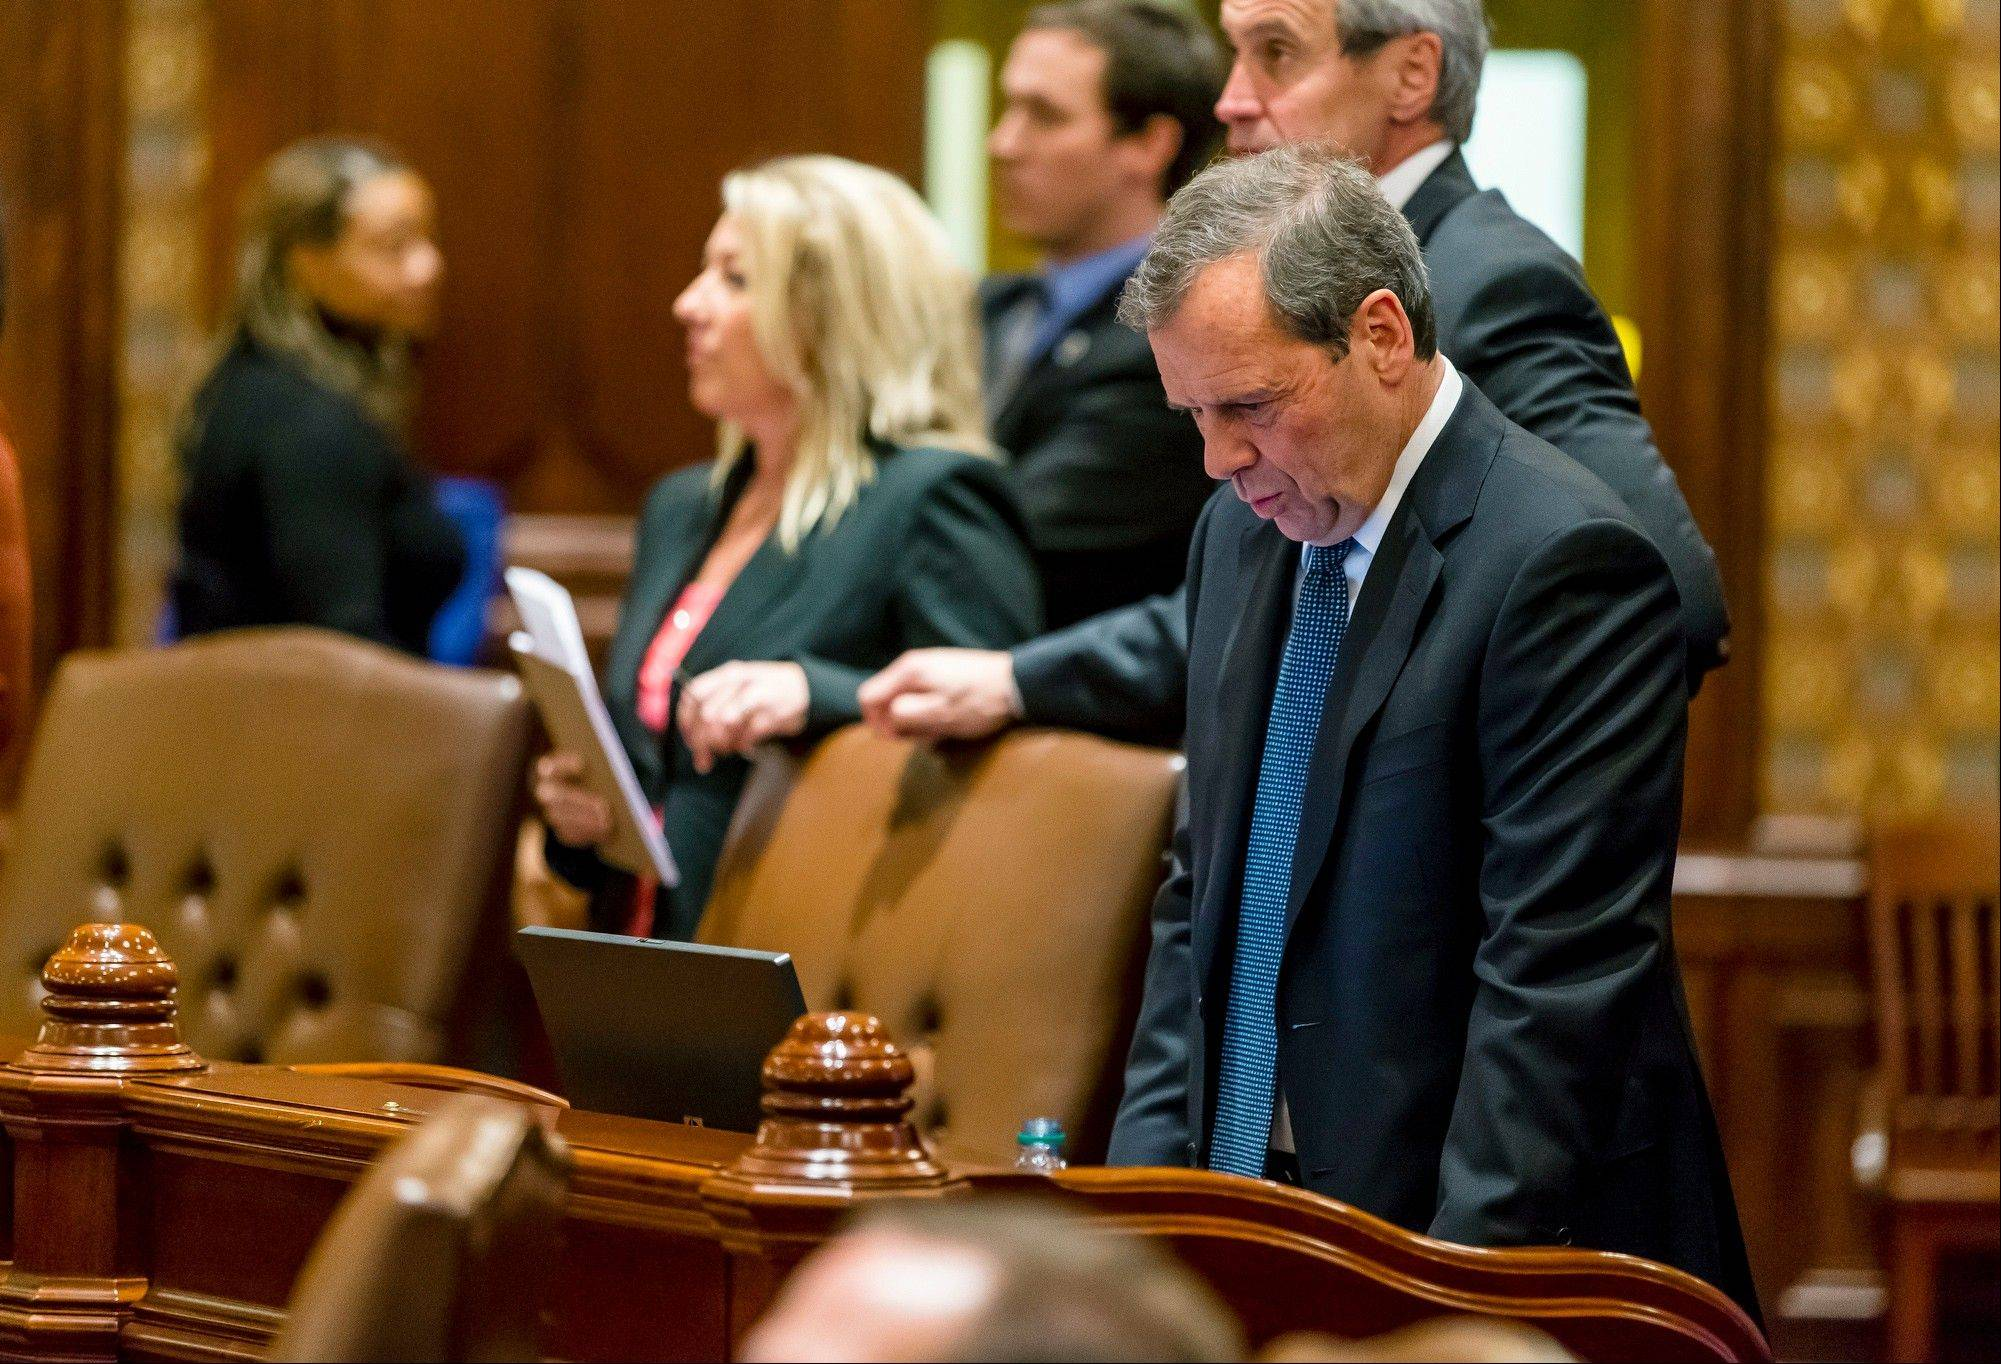 Illinois Senate President John Cullerton, a Chicago Democrat, reacts as voting begins on the pension reform bill this week in Springfield.